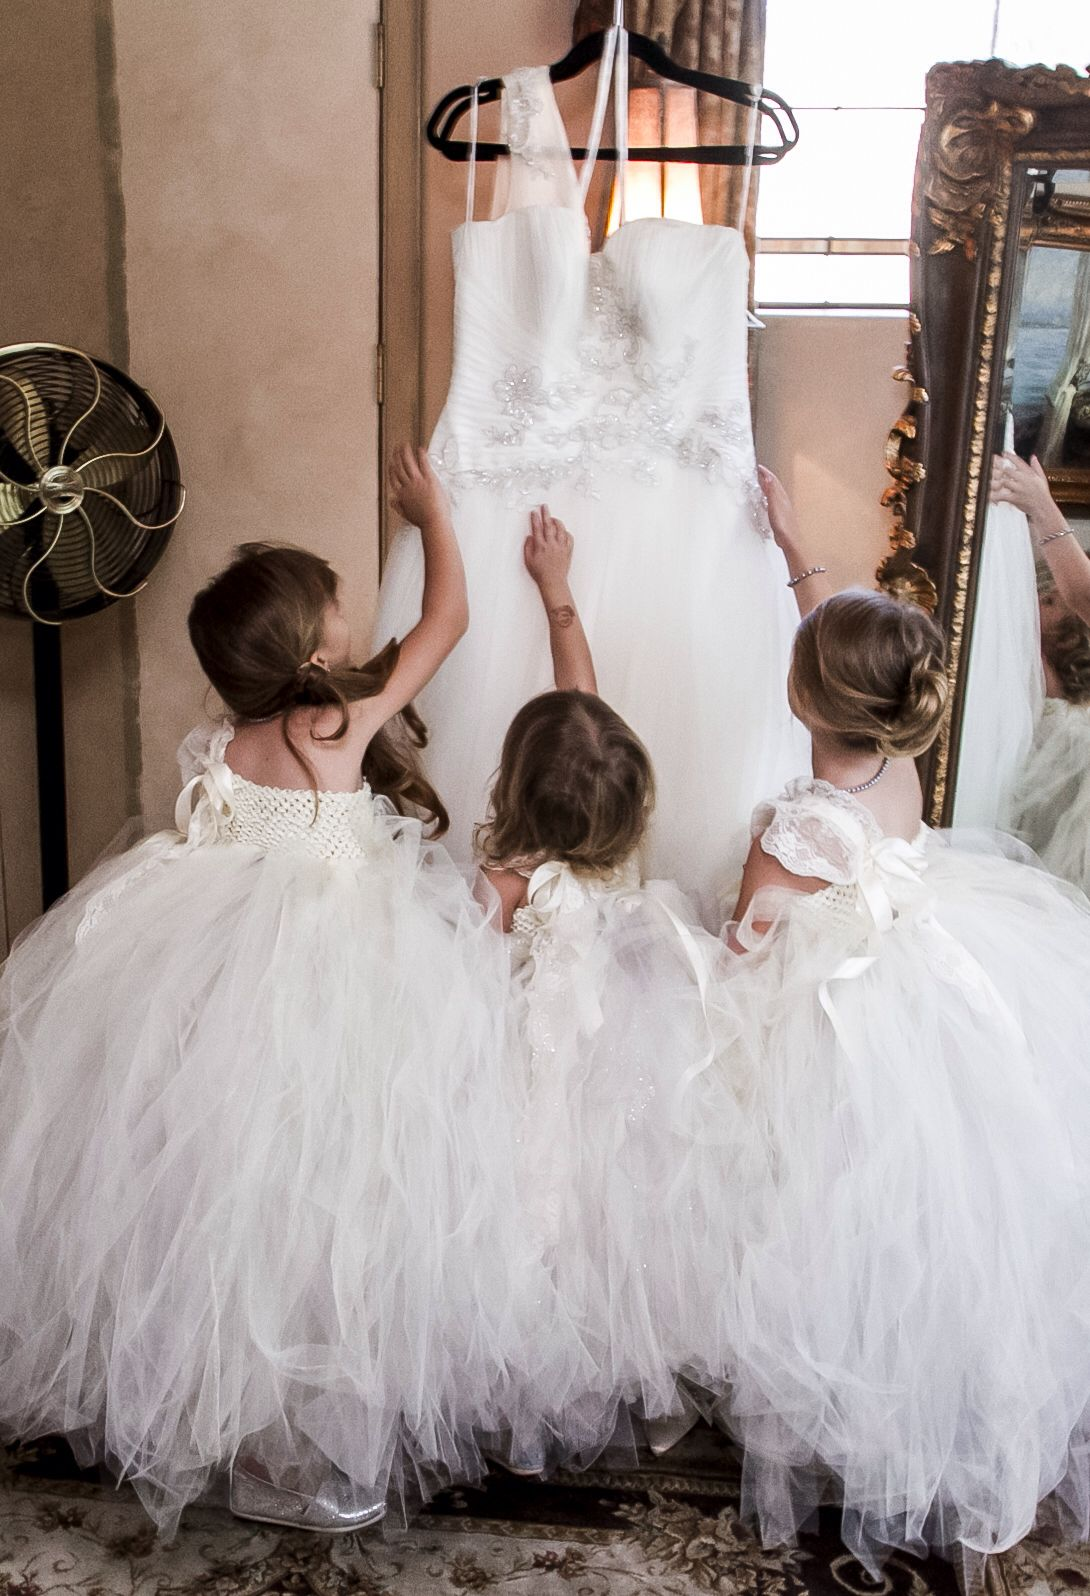 Every little girl dreams of her wedding day. | Wedding Thoughts ...